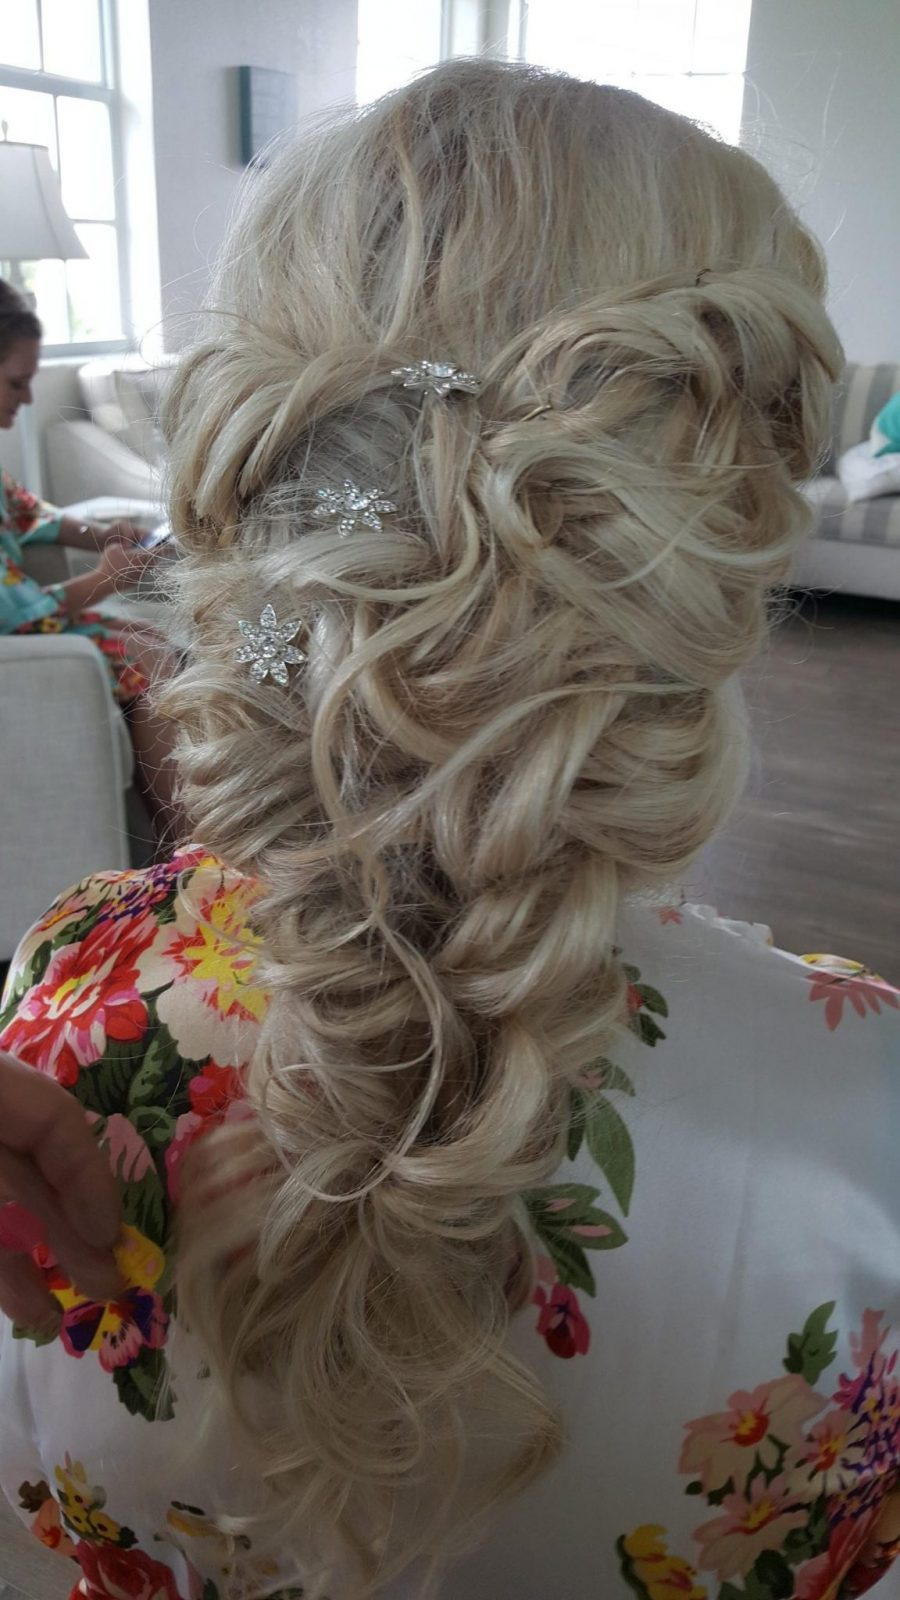 Shear Sailing June Wedding Hair Styling and Airbrush Makeup Brides Braid